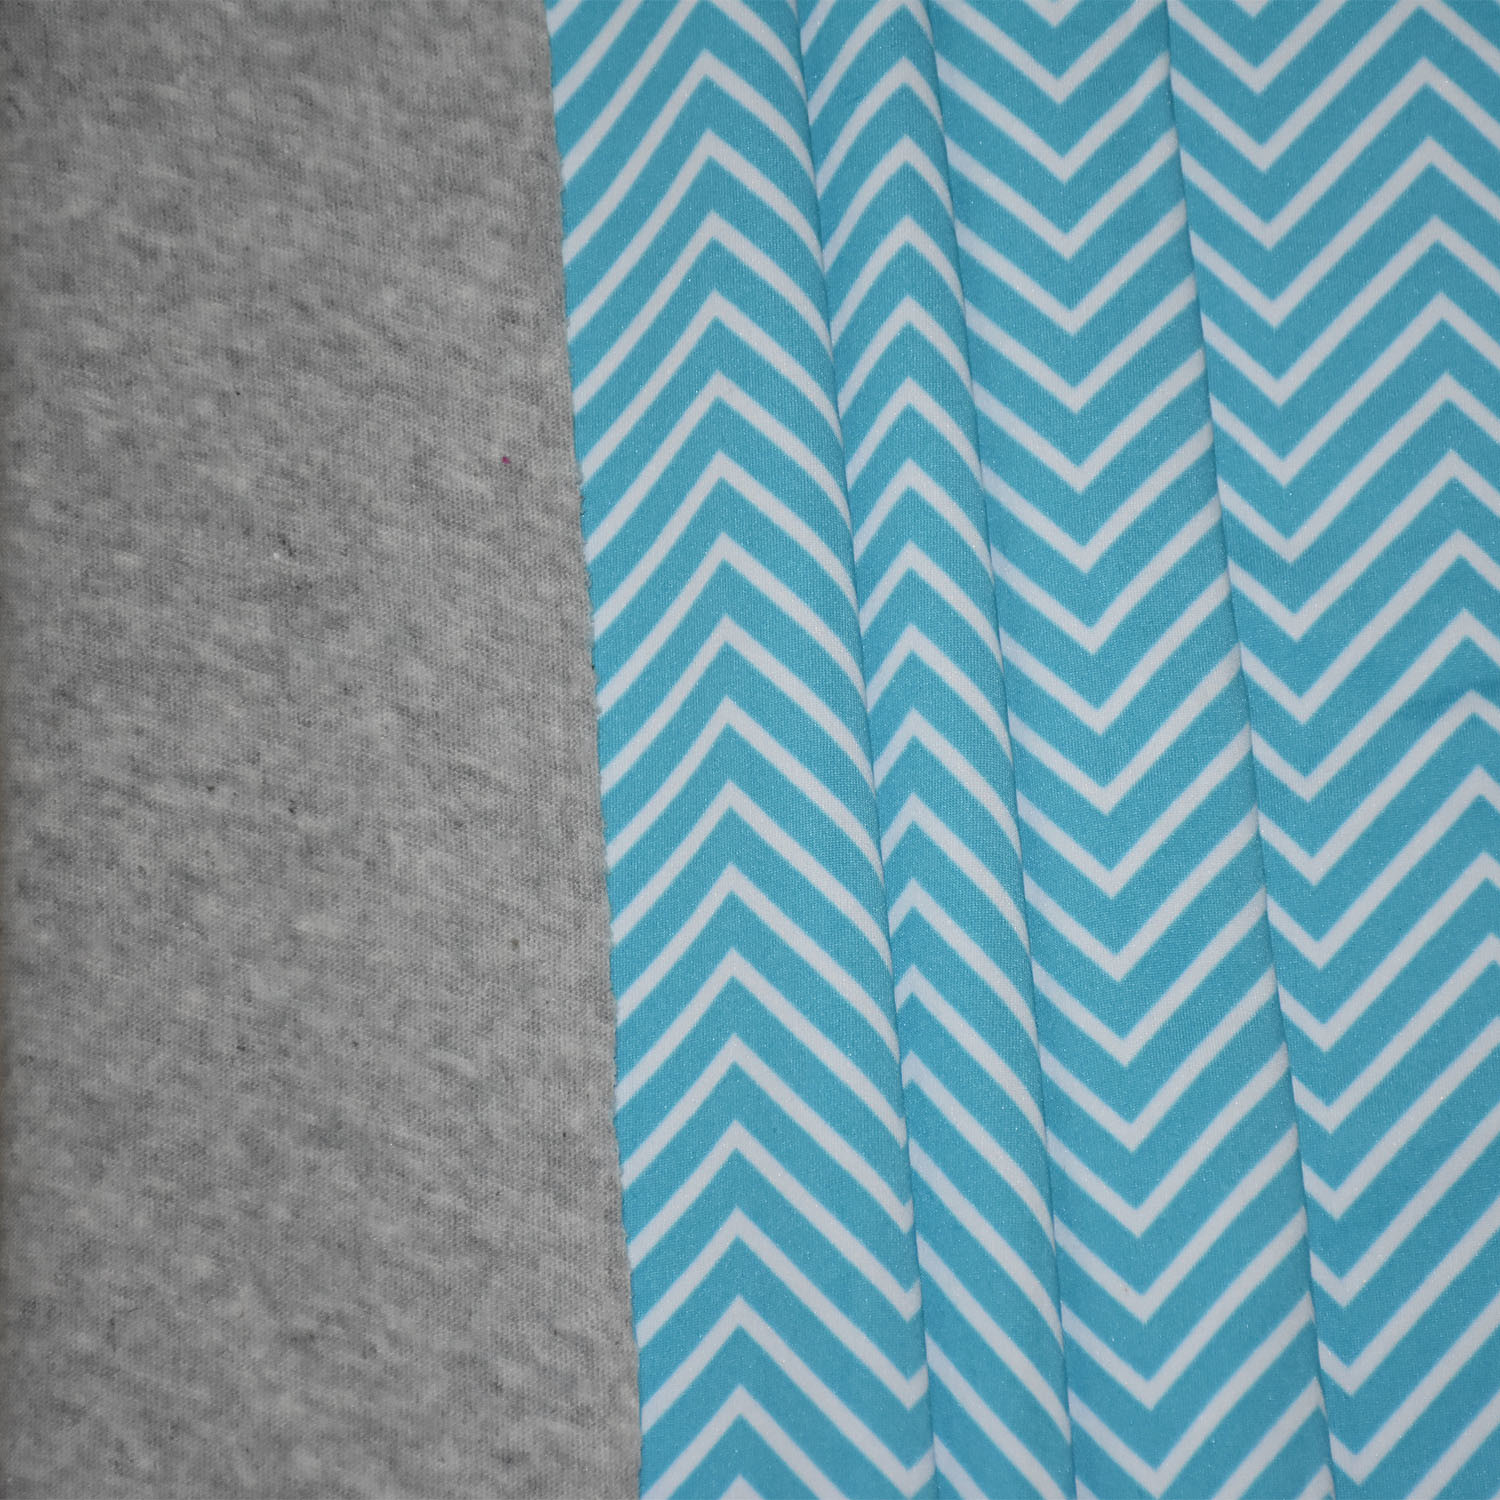 Polyester/Cotton/Spandex Bonded Fabric for Clothing